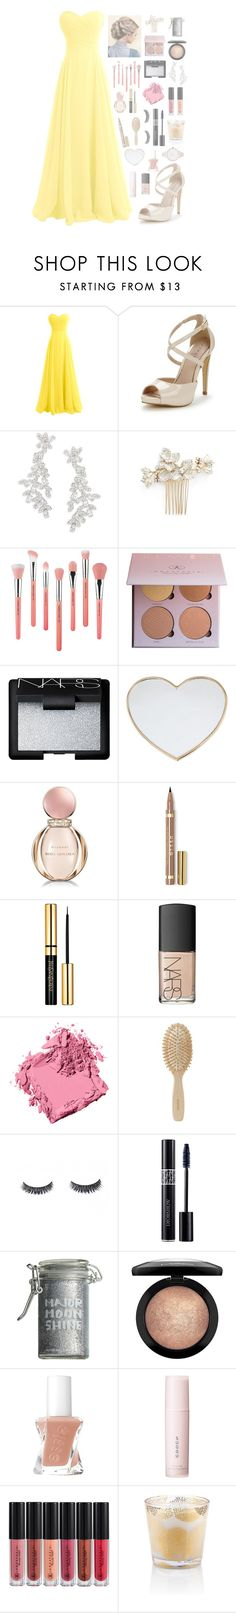 """""""Round 3    Lizzy"""" by the-best-poly-awards ❤ liked on Polyvore featuring Lipsy, Kate Spade, Wedding Belles New York, Bdellium Tools, NARS Cosmetics, Gucci, Bulgari, Bobbi Brown Cosmetics, Meraki and Christian Dior"""